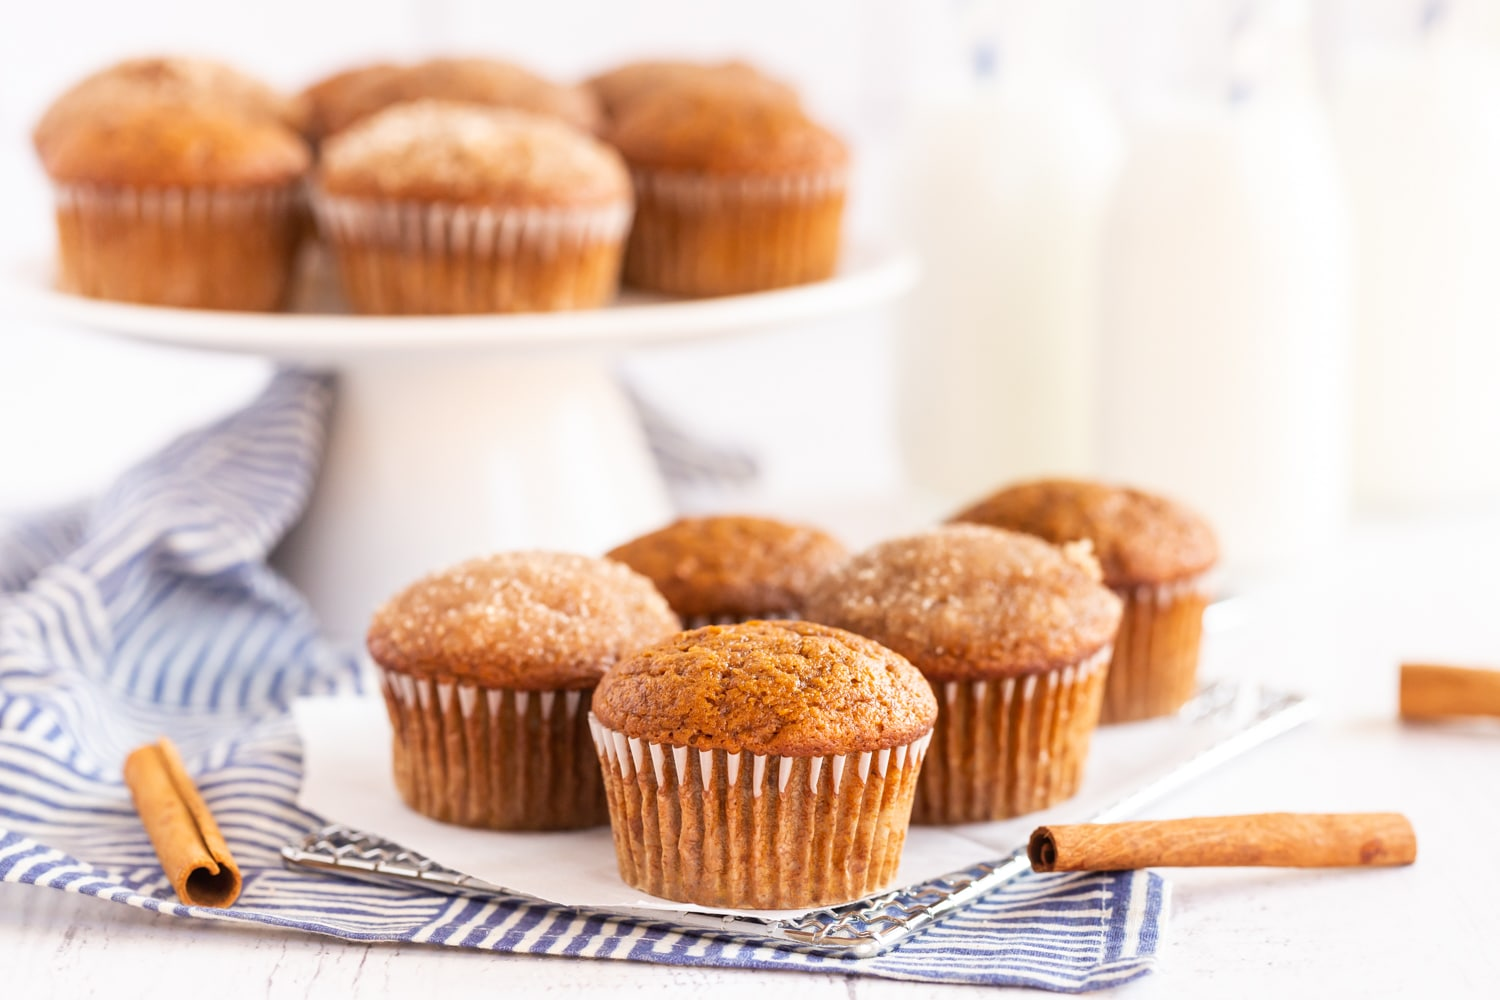 muffins with sugar topping and plain